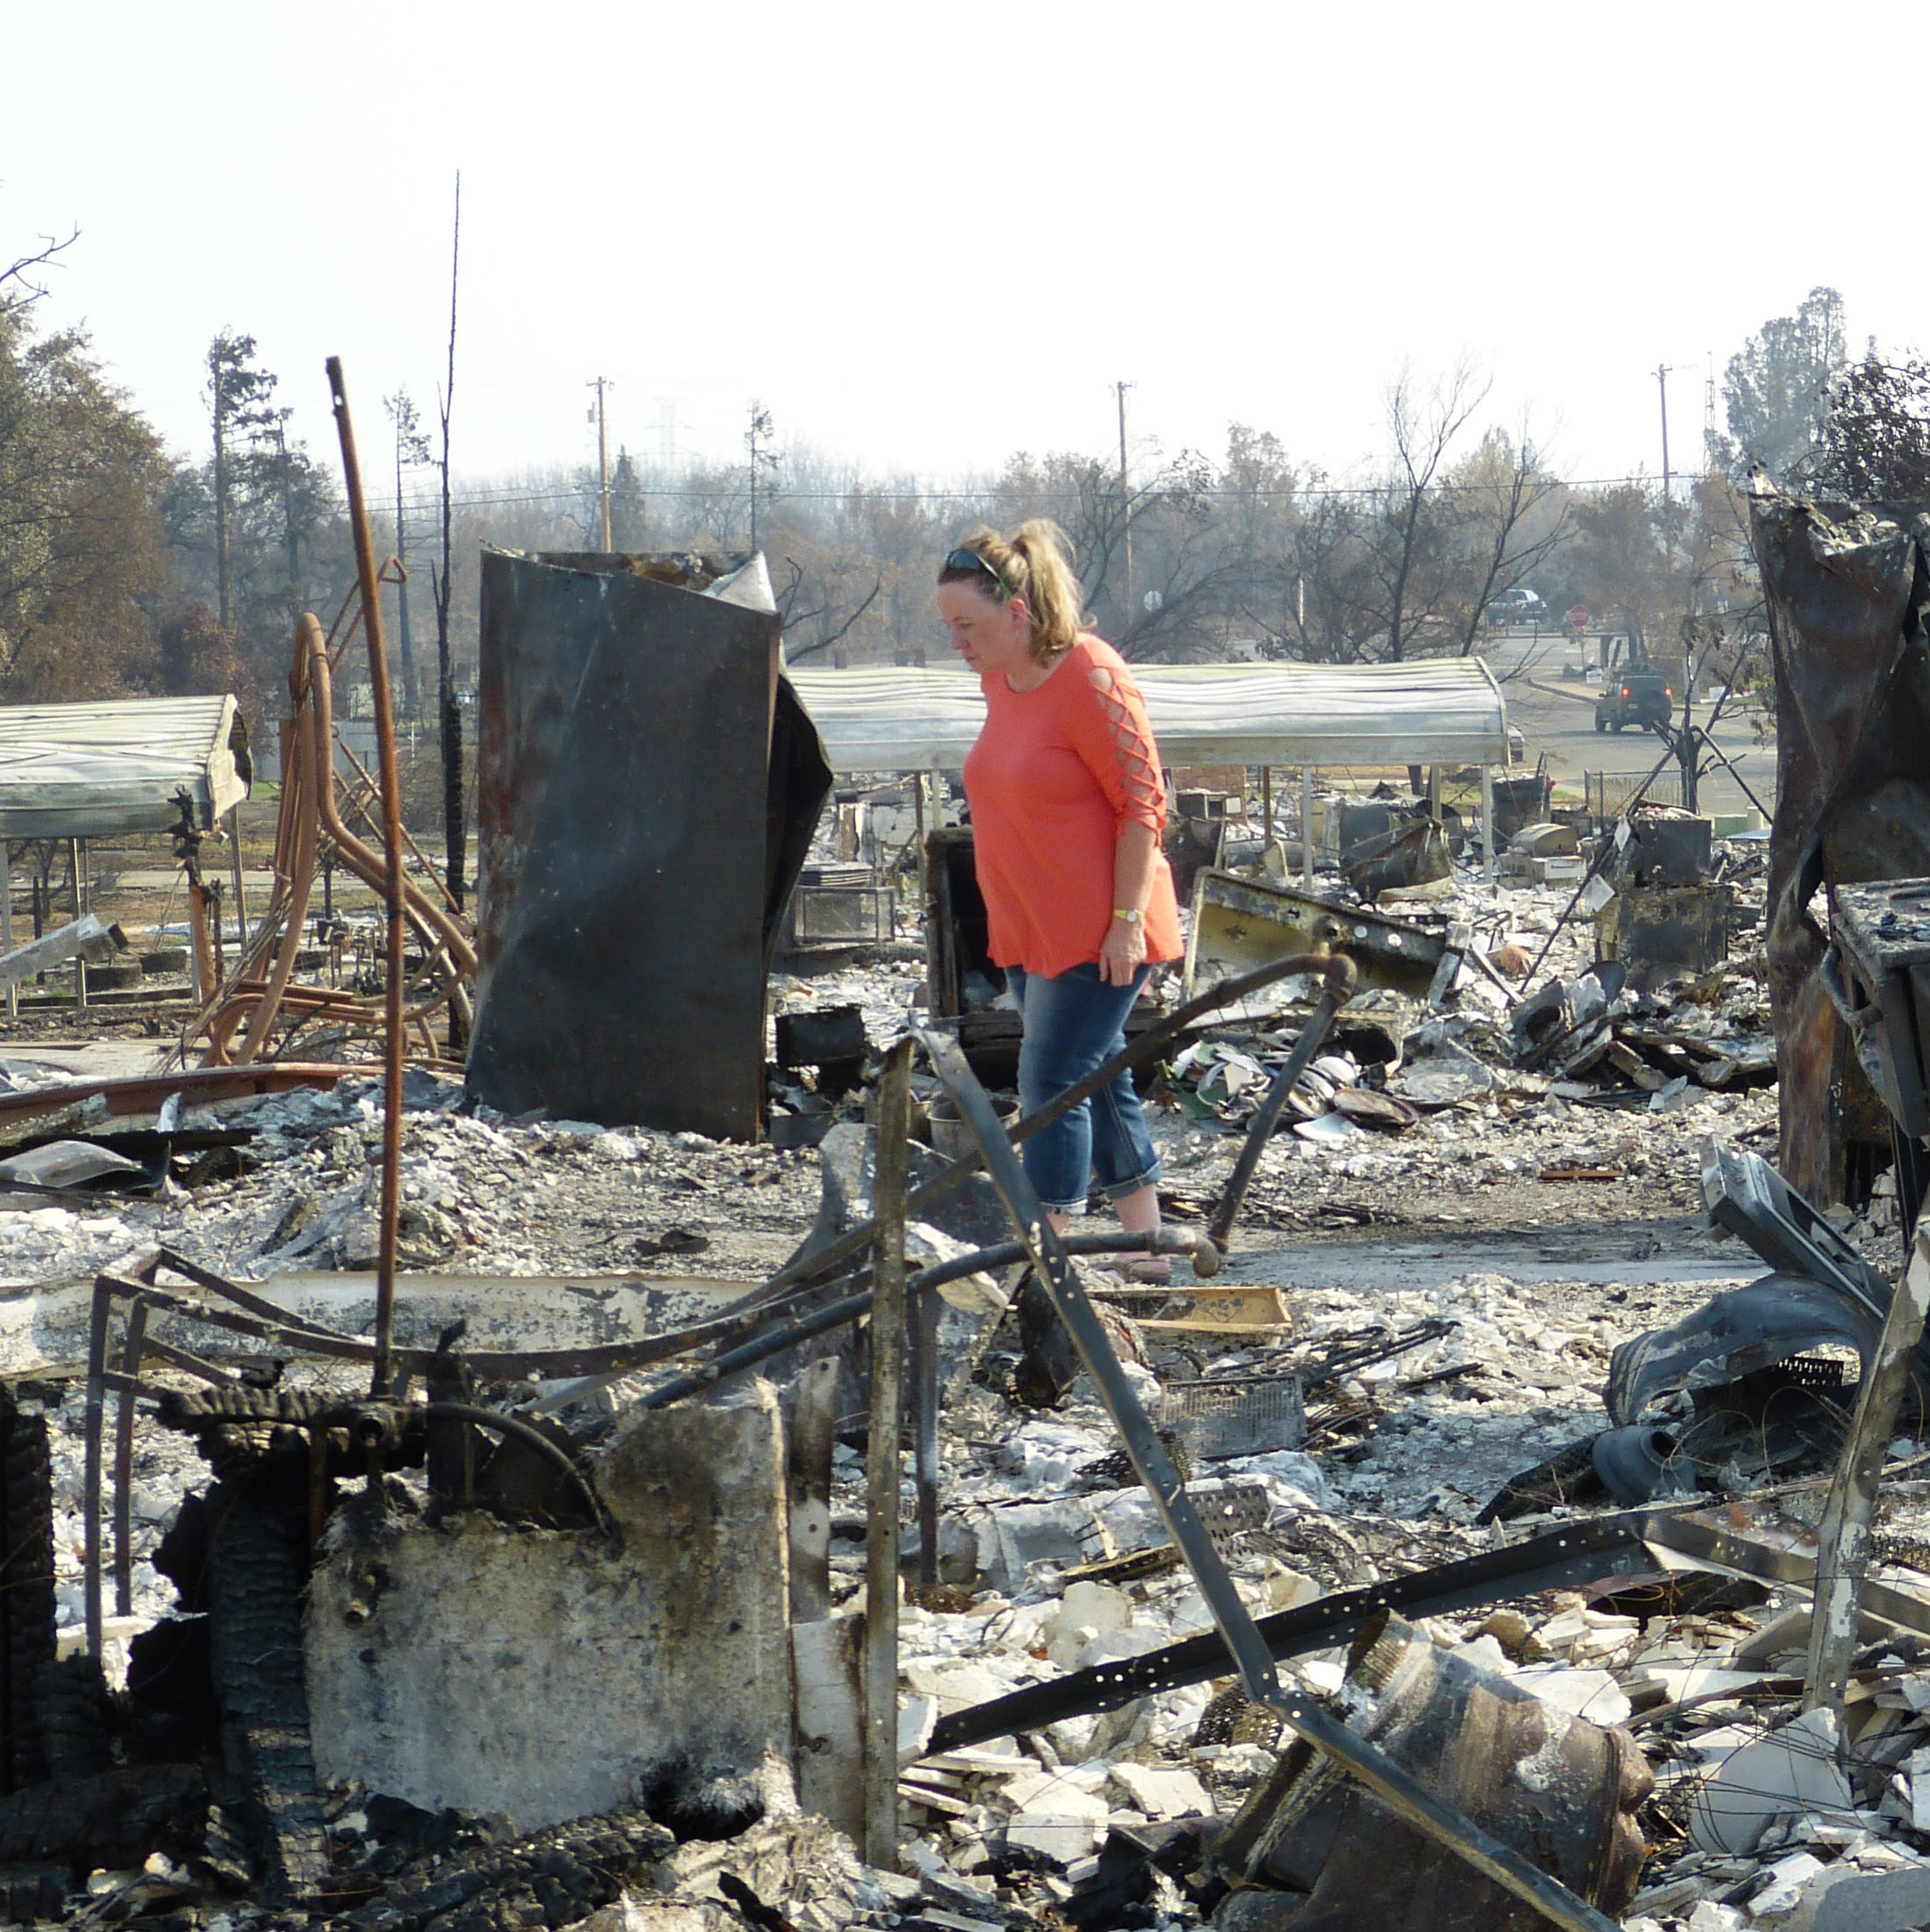 Mom and kids escaped two fires. In search of a new normal.